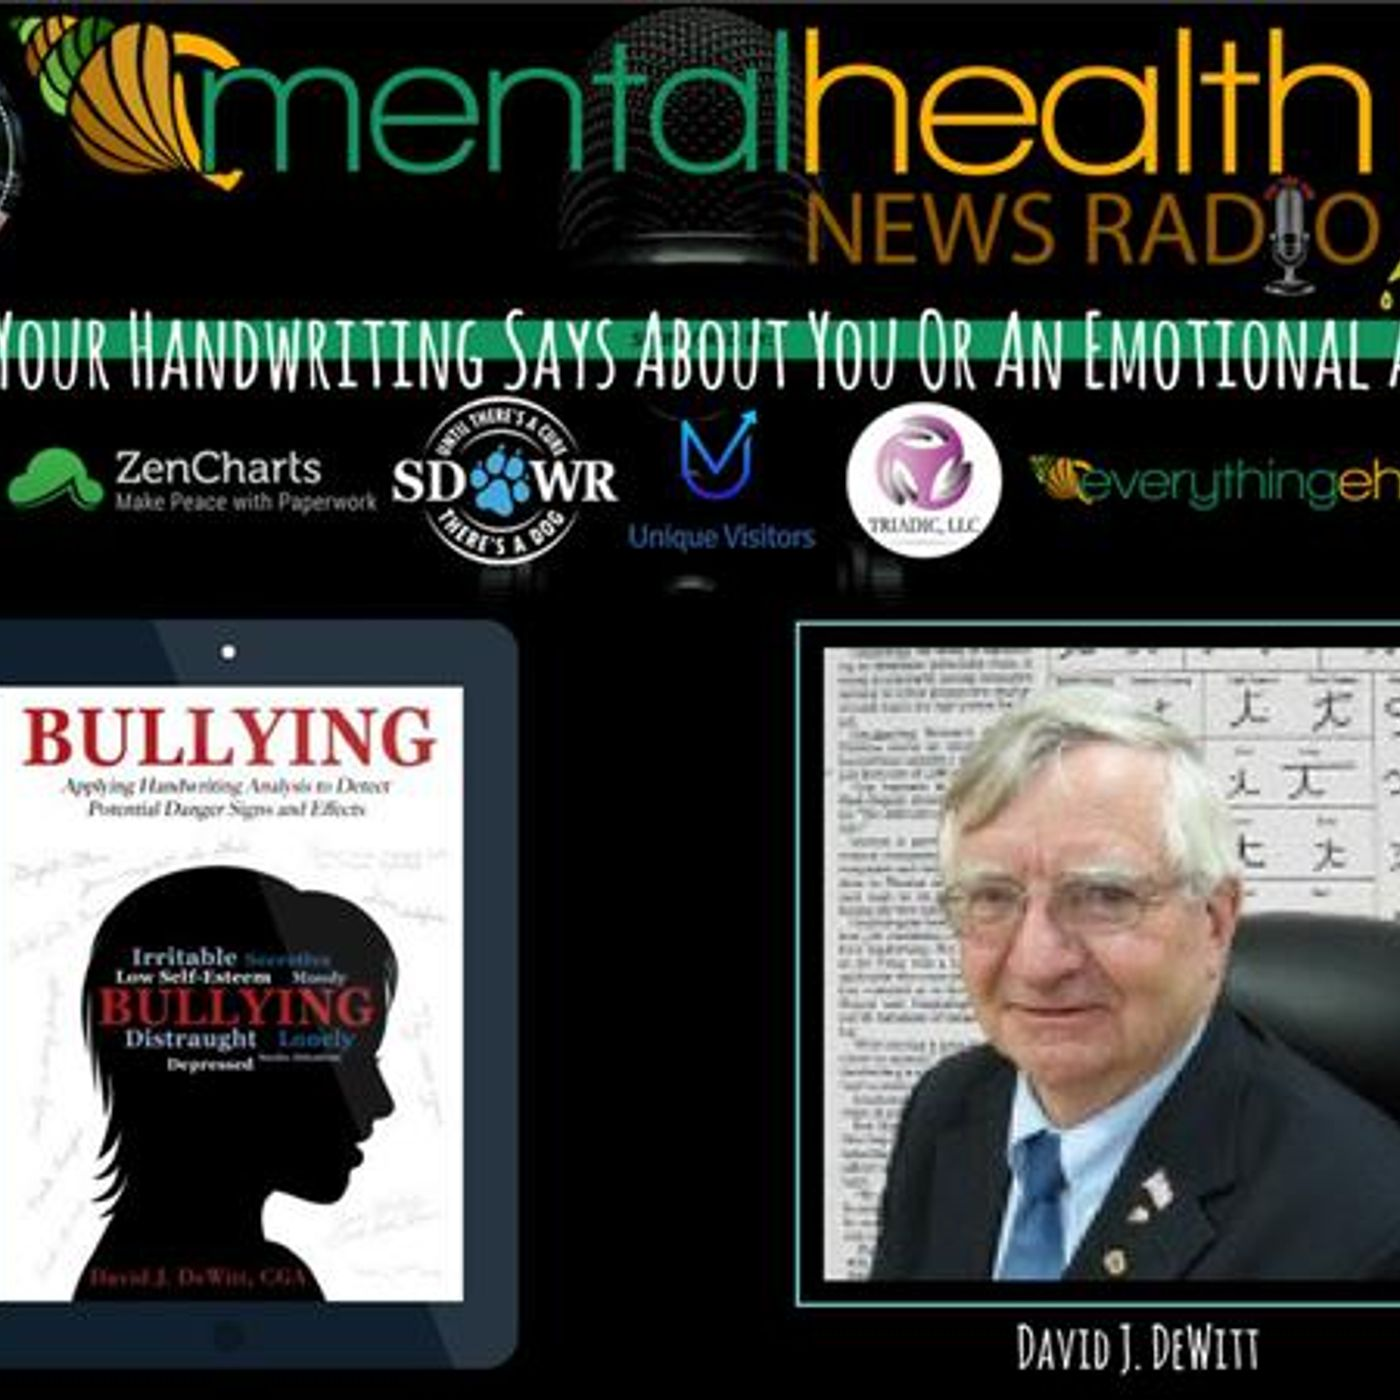 Mental Health News Radio - What Your Handwriting Says About You Or An Emotional Abuser